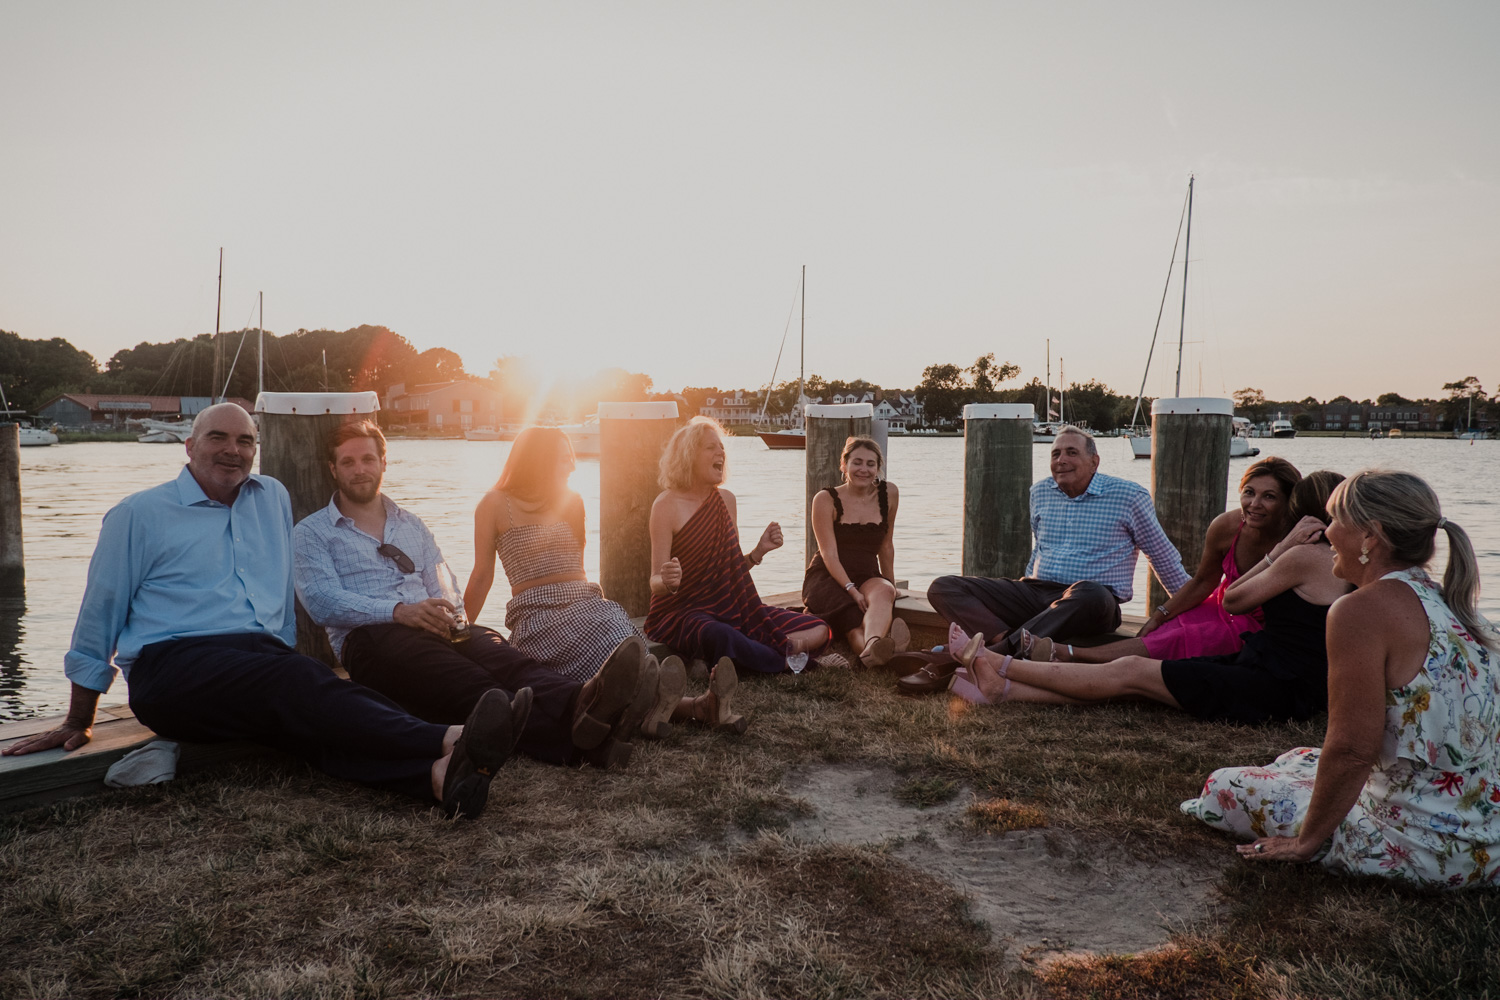 wedding guests sit on the docks during sunset relaxing at the Chesapeake Bay Maritime Museum